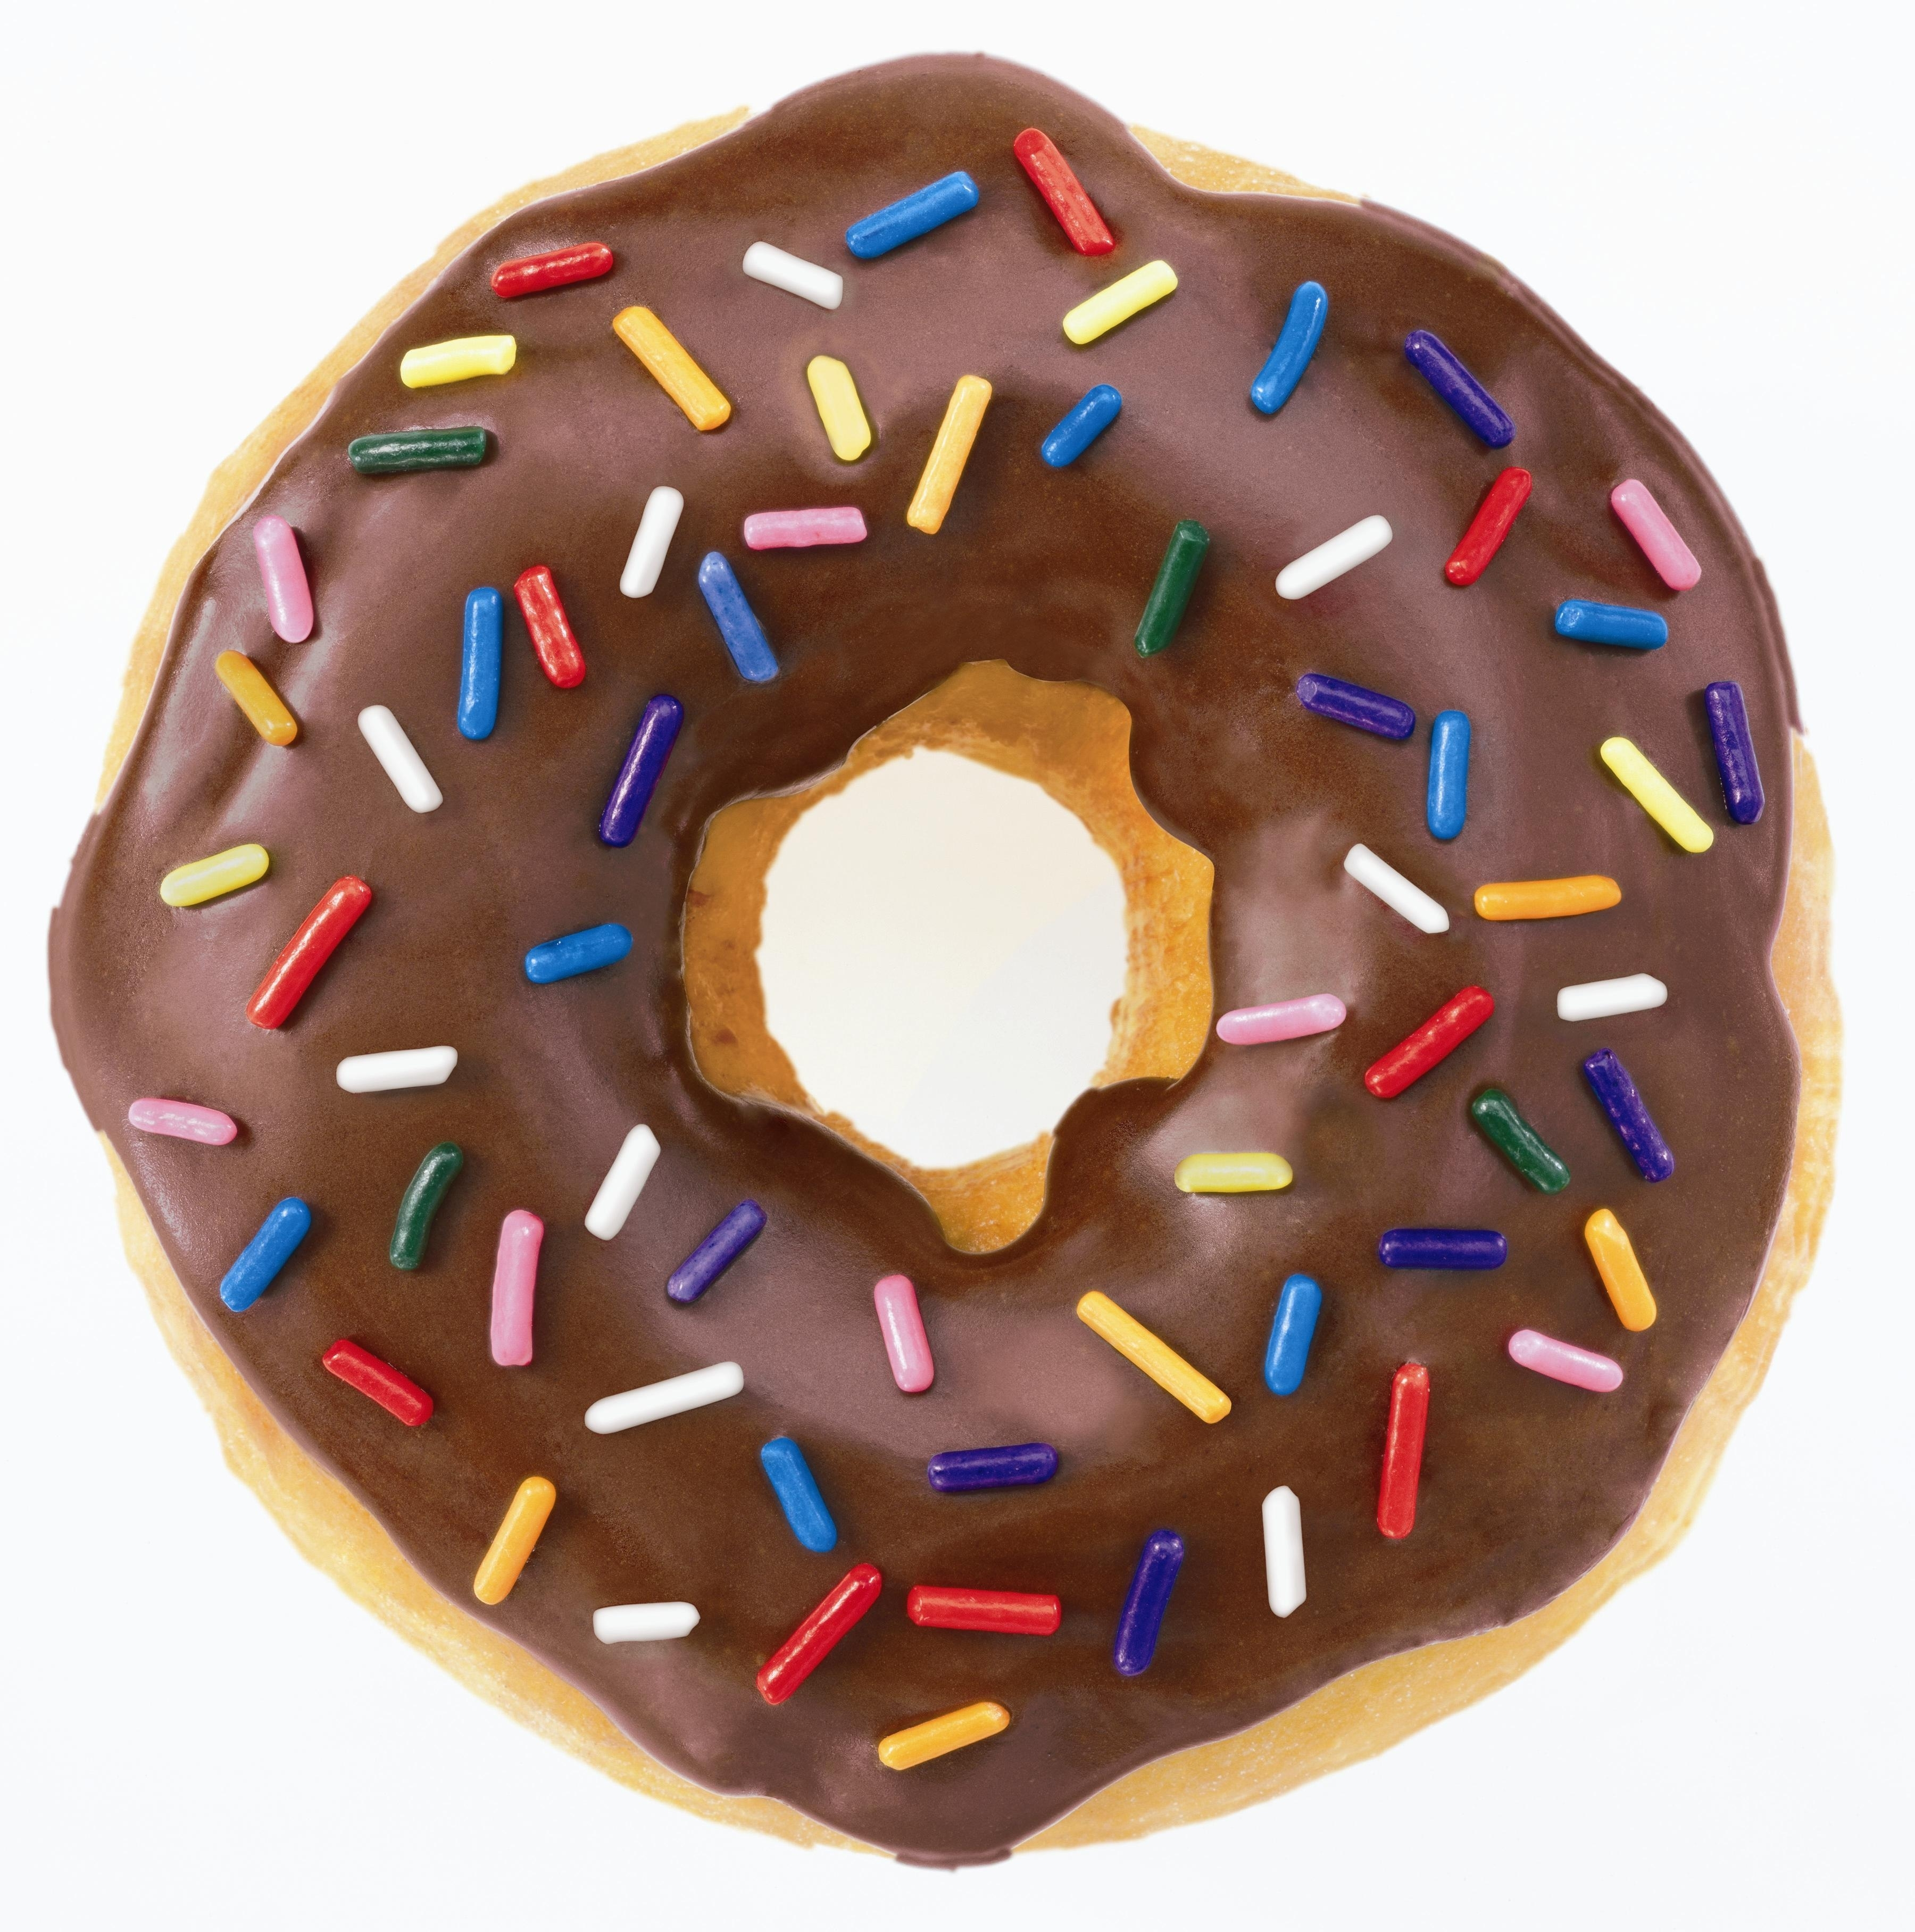 Doughnuts are a well rounded meal